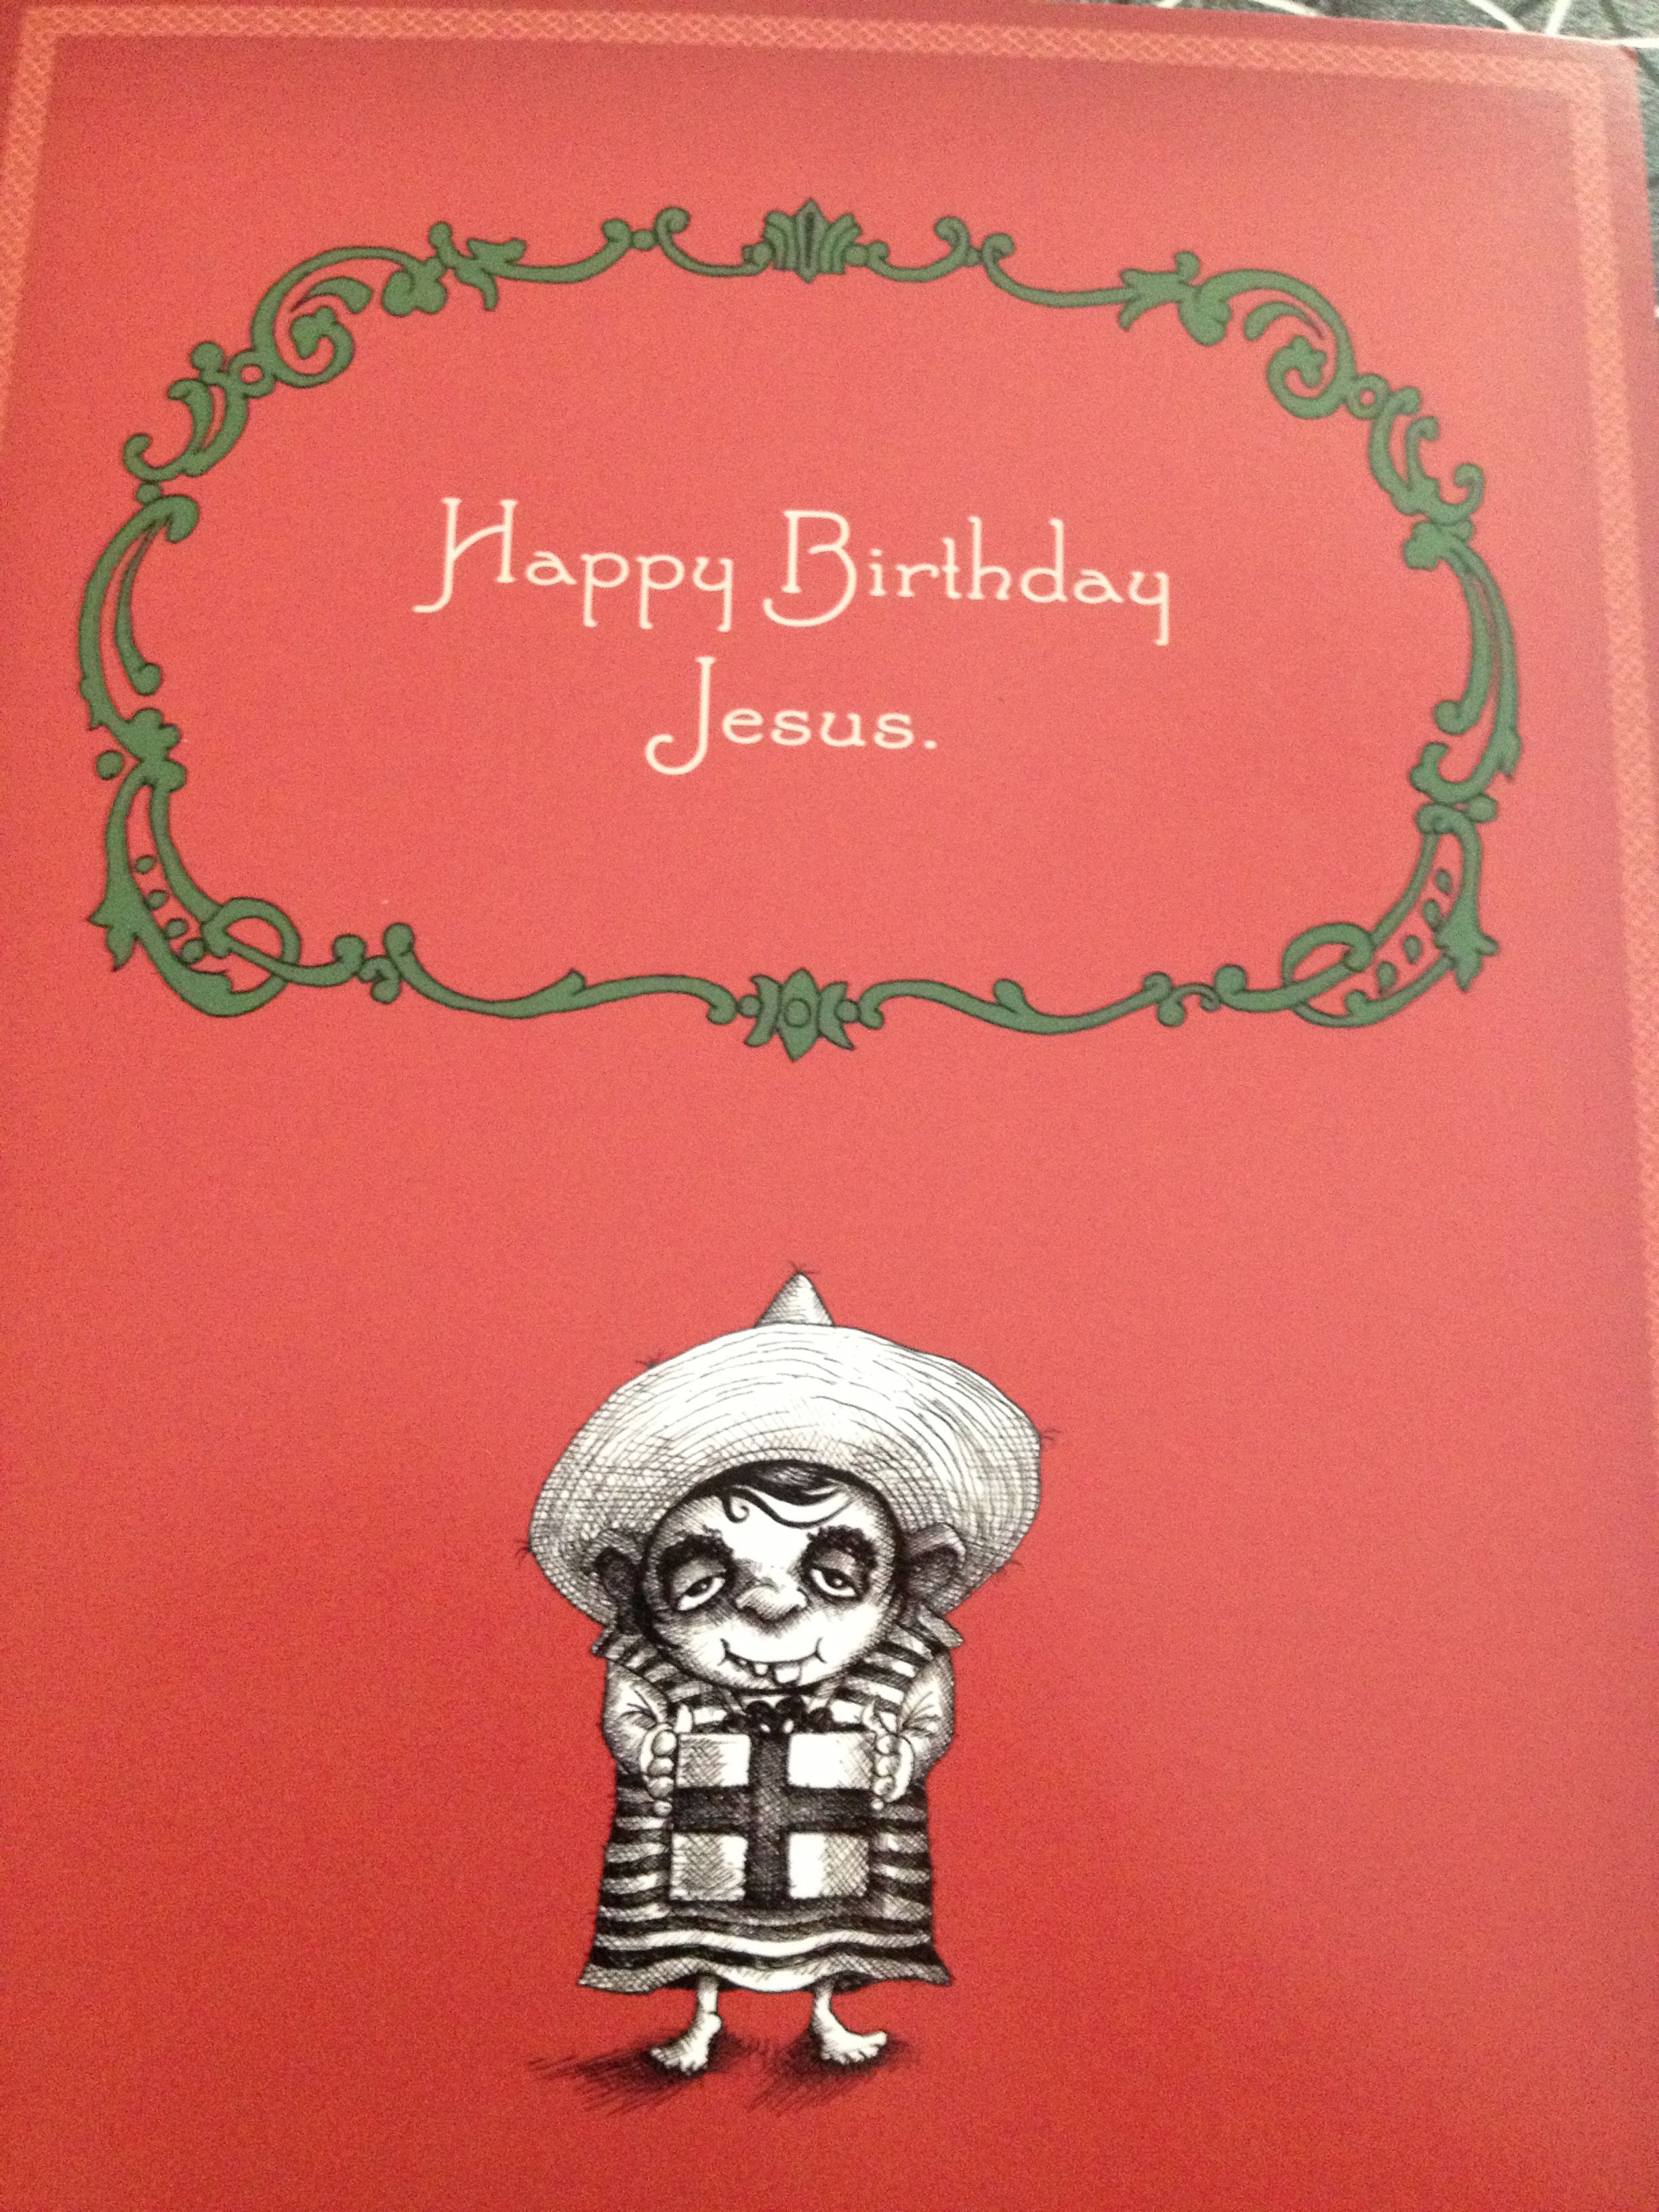 Funniest Christmas card front Inside says its a birthday card for